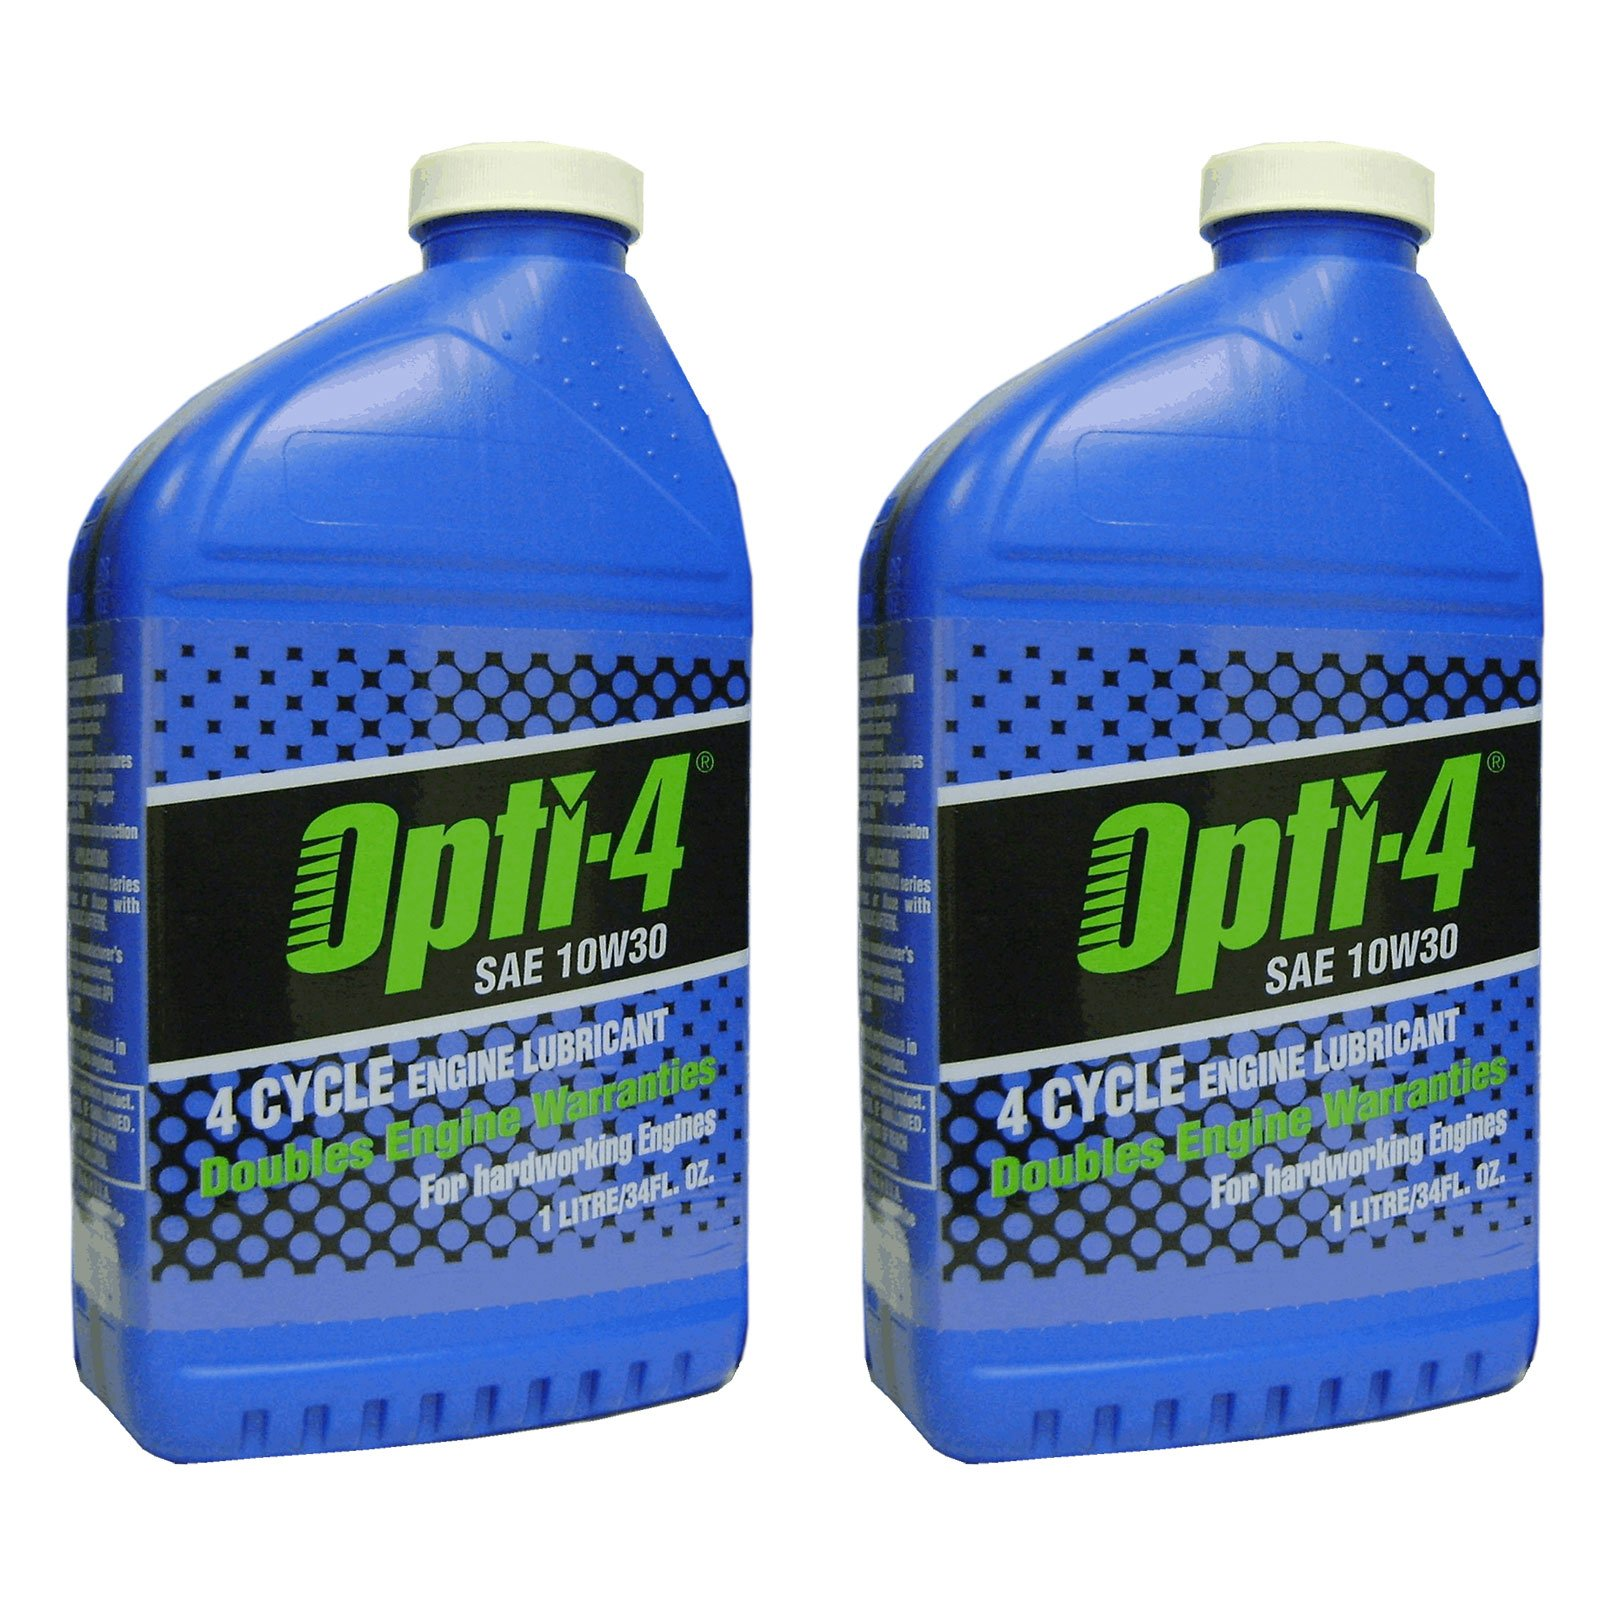 Opti-4 43121 SAE 10W30 34Oz 4-Cycle Engine Lubricant for Engines to 31hp, 2-Pack